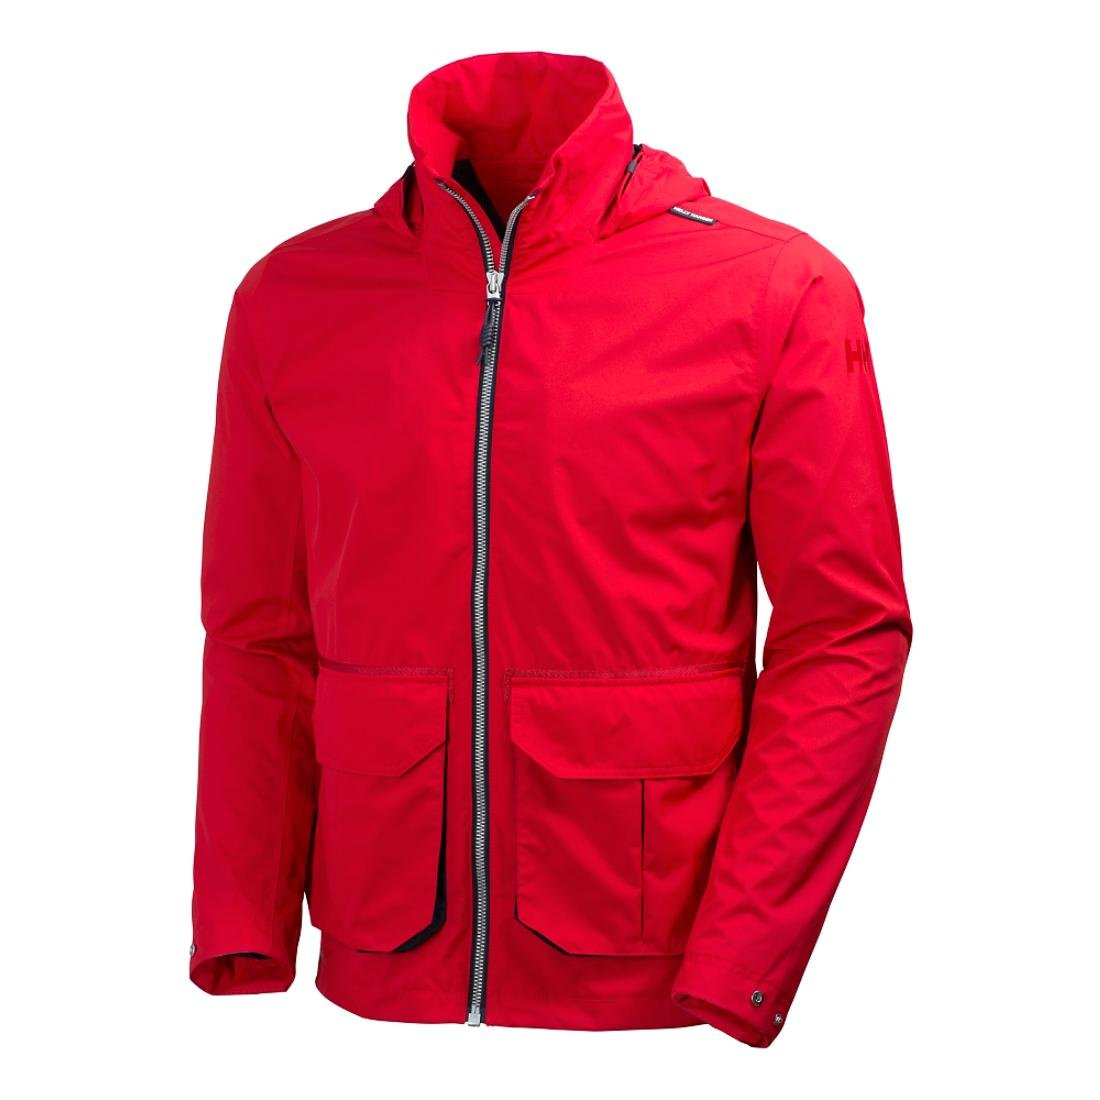 Helly Hansen Herren Jacke So Marine Jacket